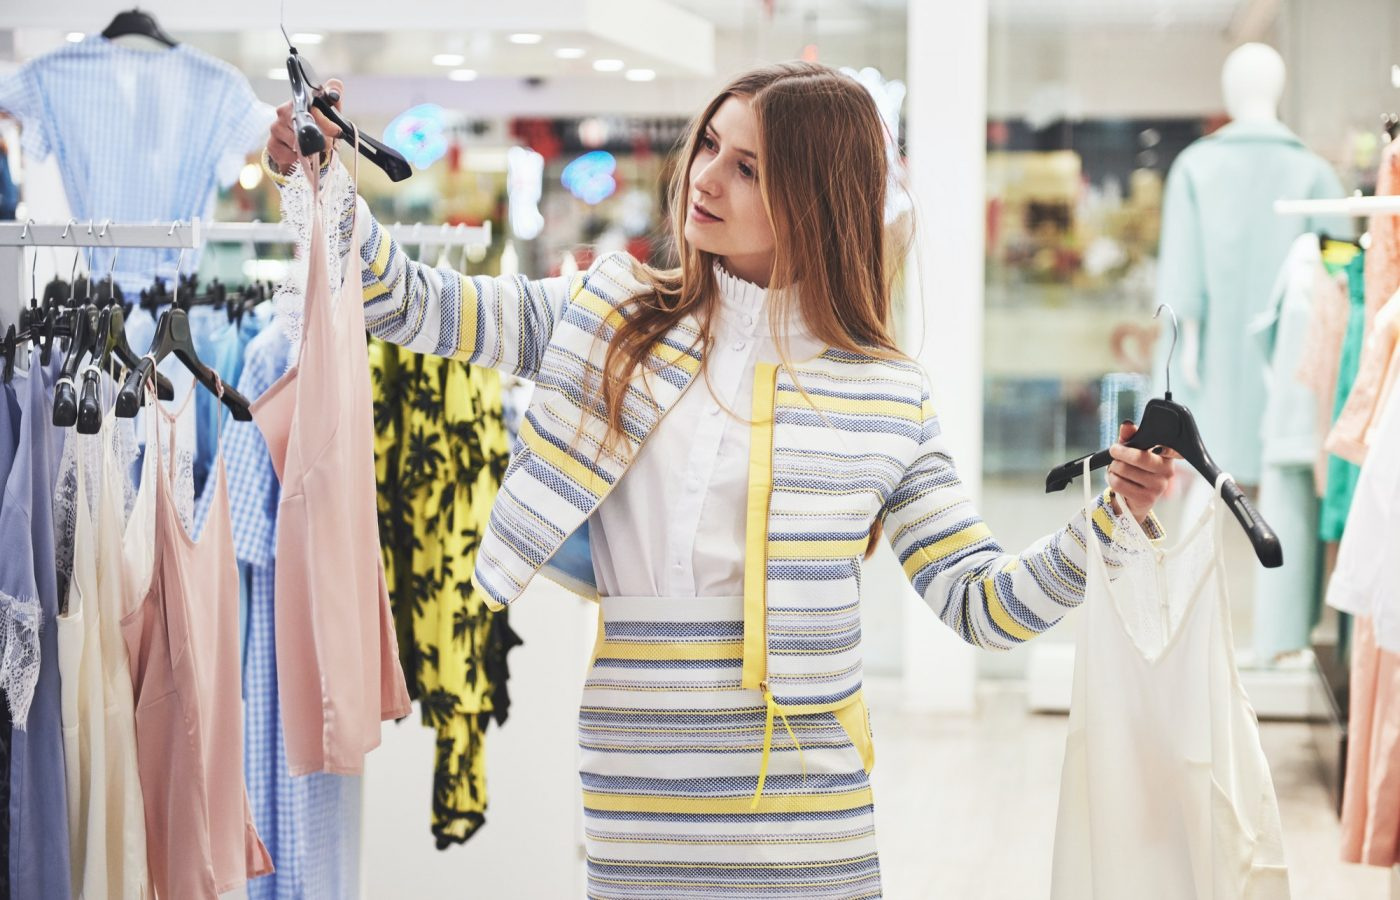 sale, fashion, consumerism and people concept - happy young woman with shopping bags choosing